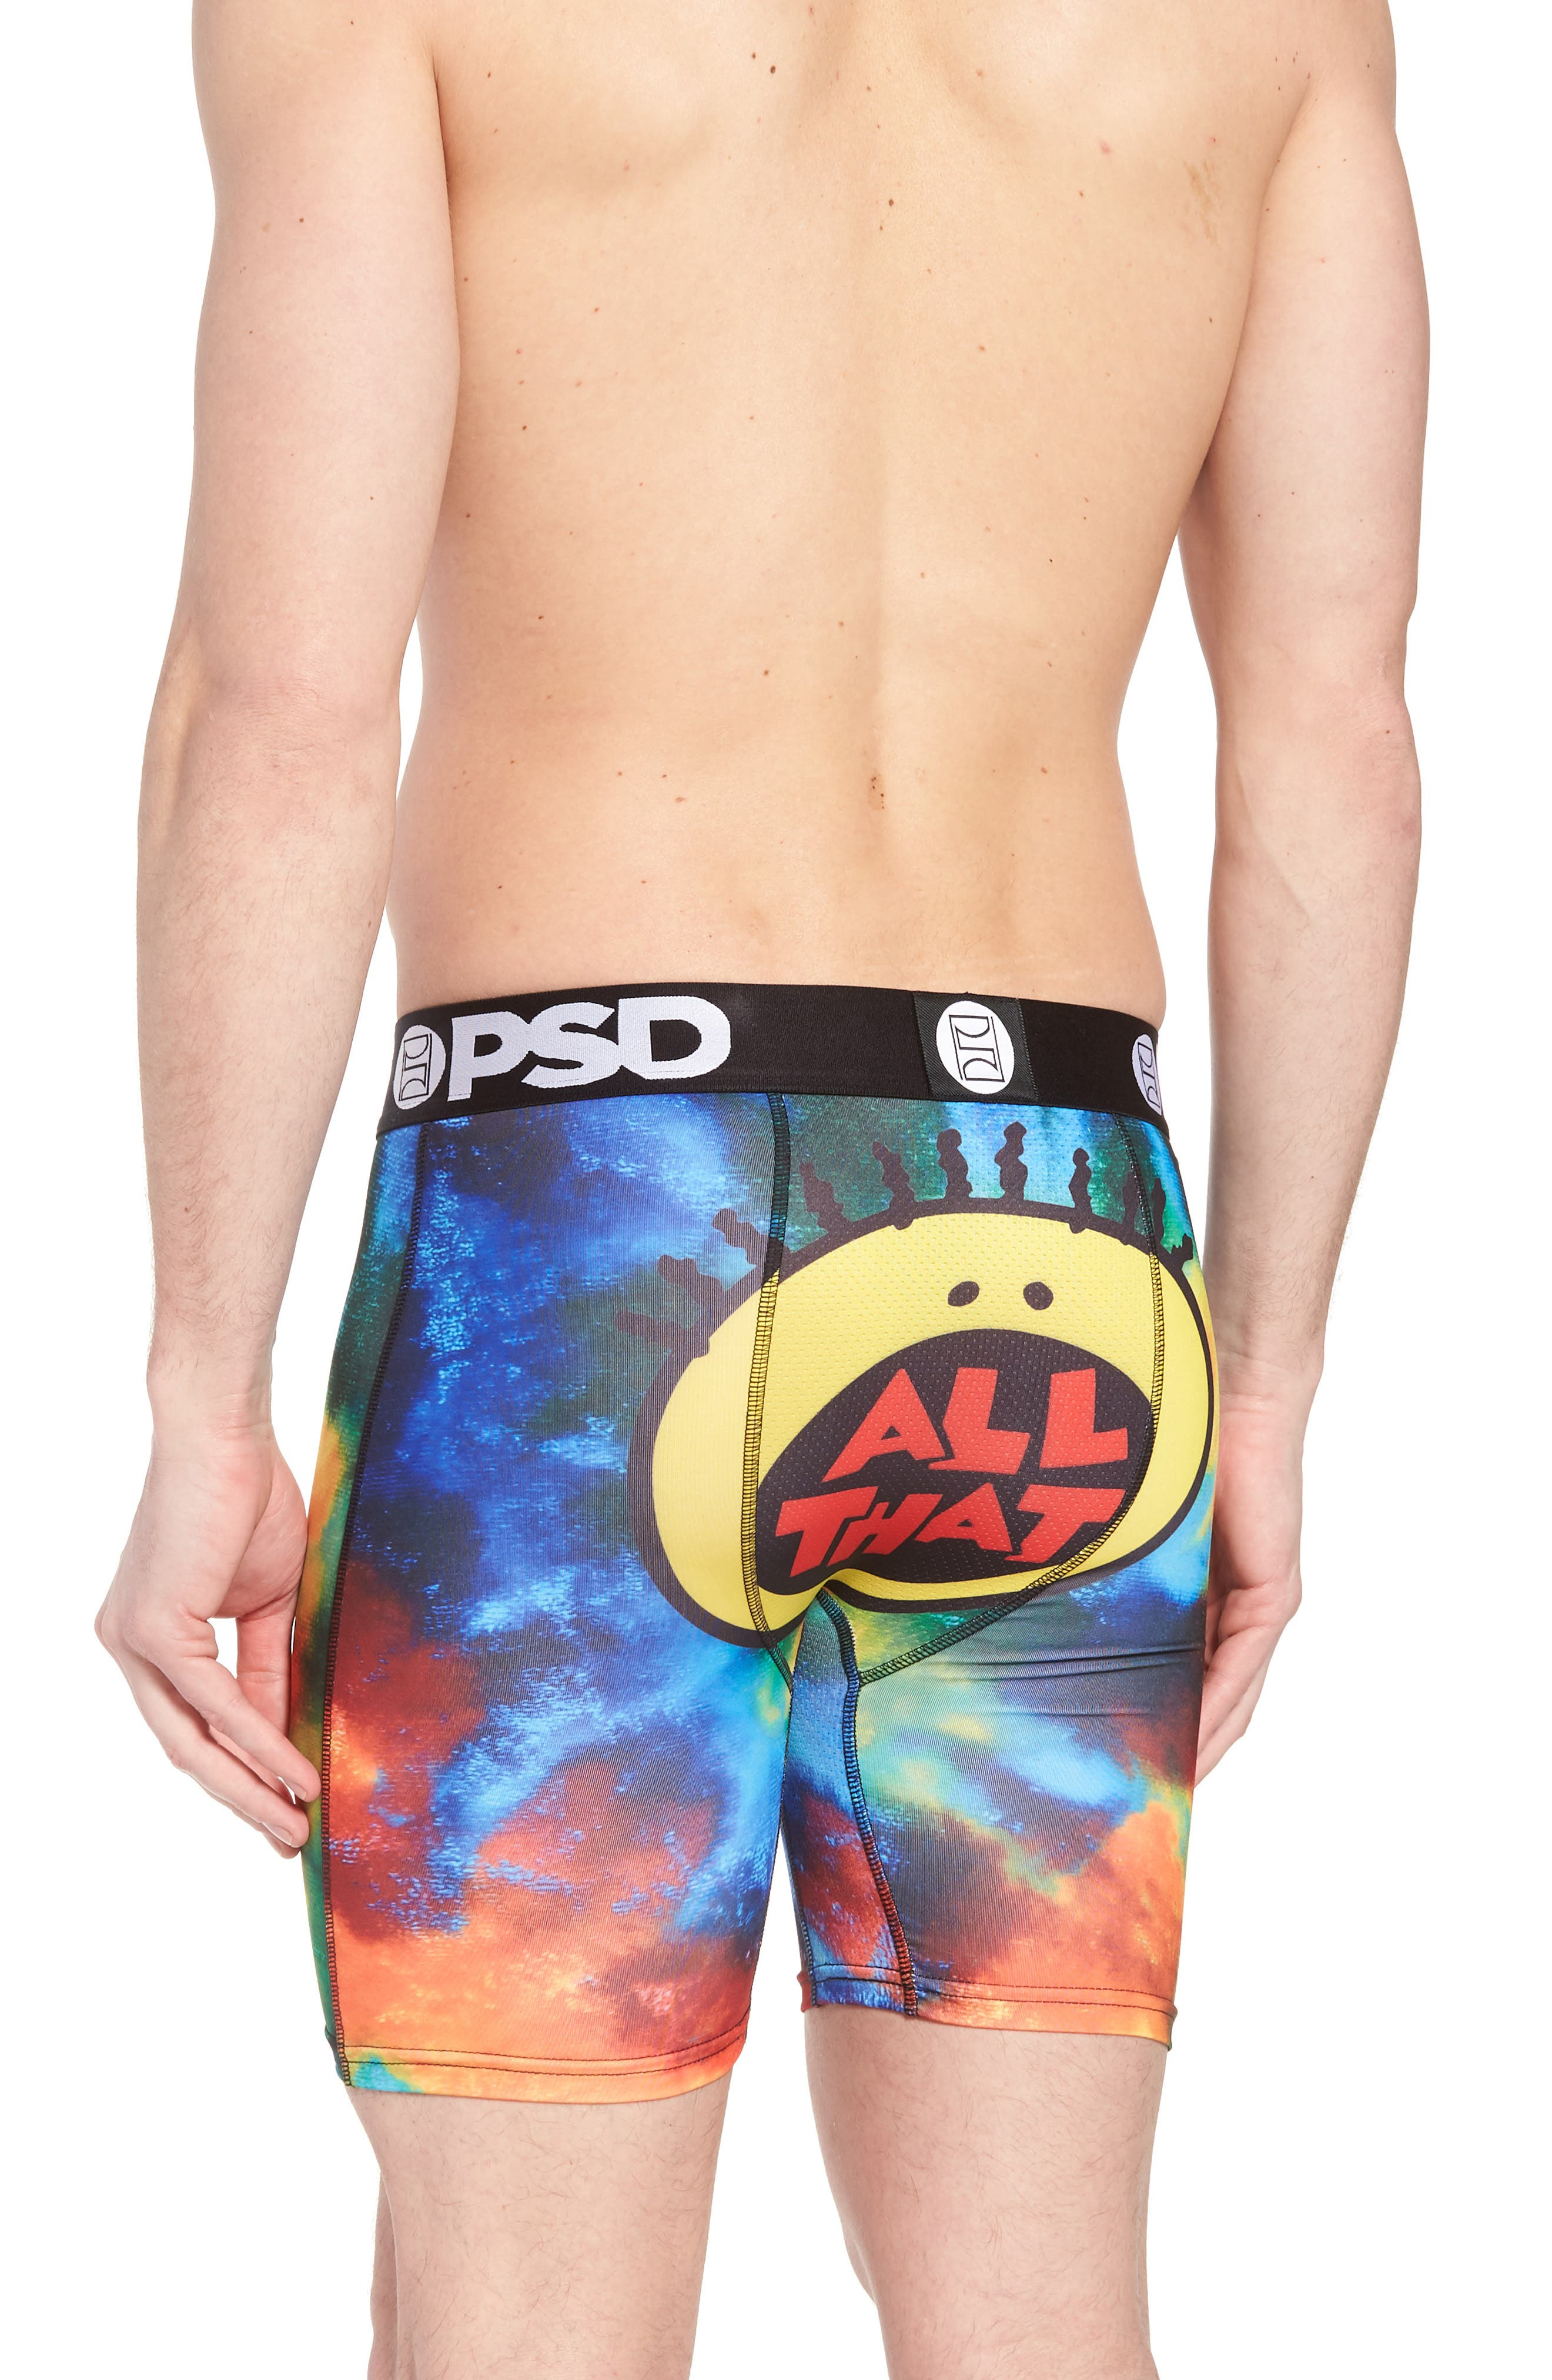 PSD,                             All That Boxer Briefs,                             Alternate thumbnail 2, color,                             600